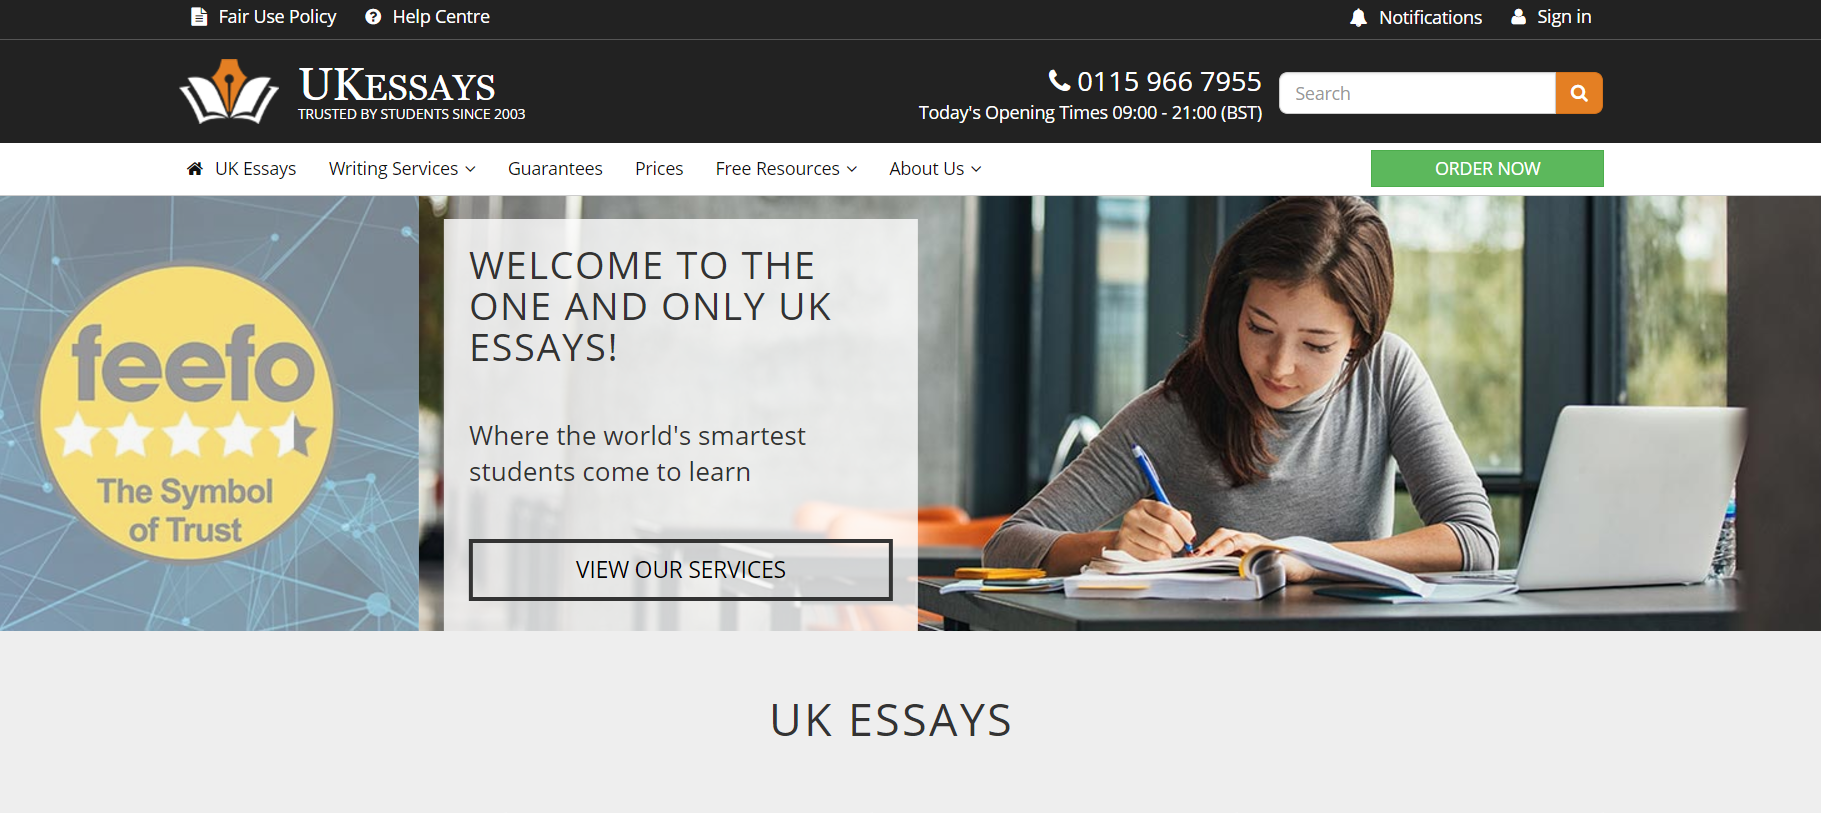 How To Start A Synthesis Essay Ukessays Com Rating A Thesis For An Essay Should also An Essay About Health Ukessayscom Review Of Essay Writings Services At Ukessays Essay On Myself In English